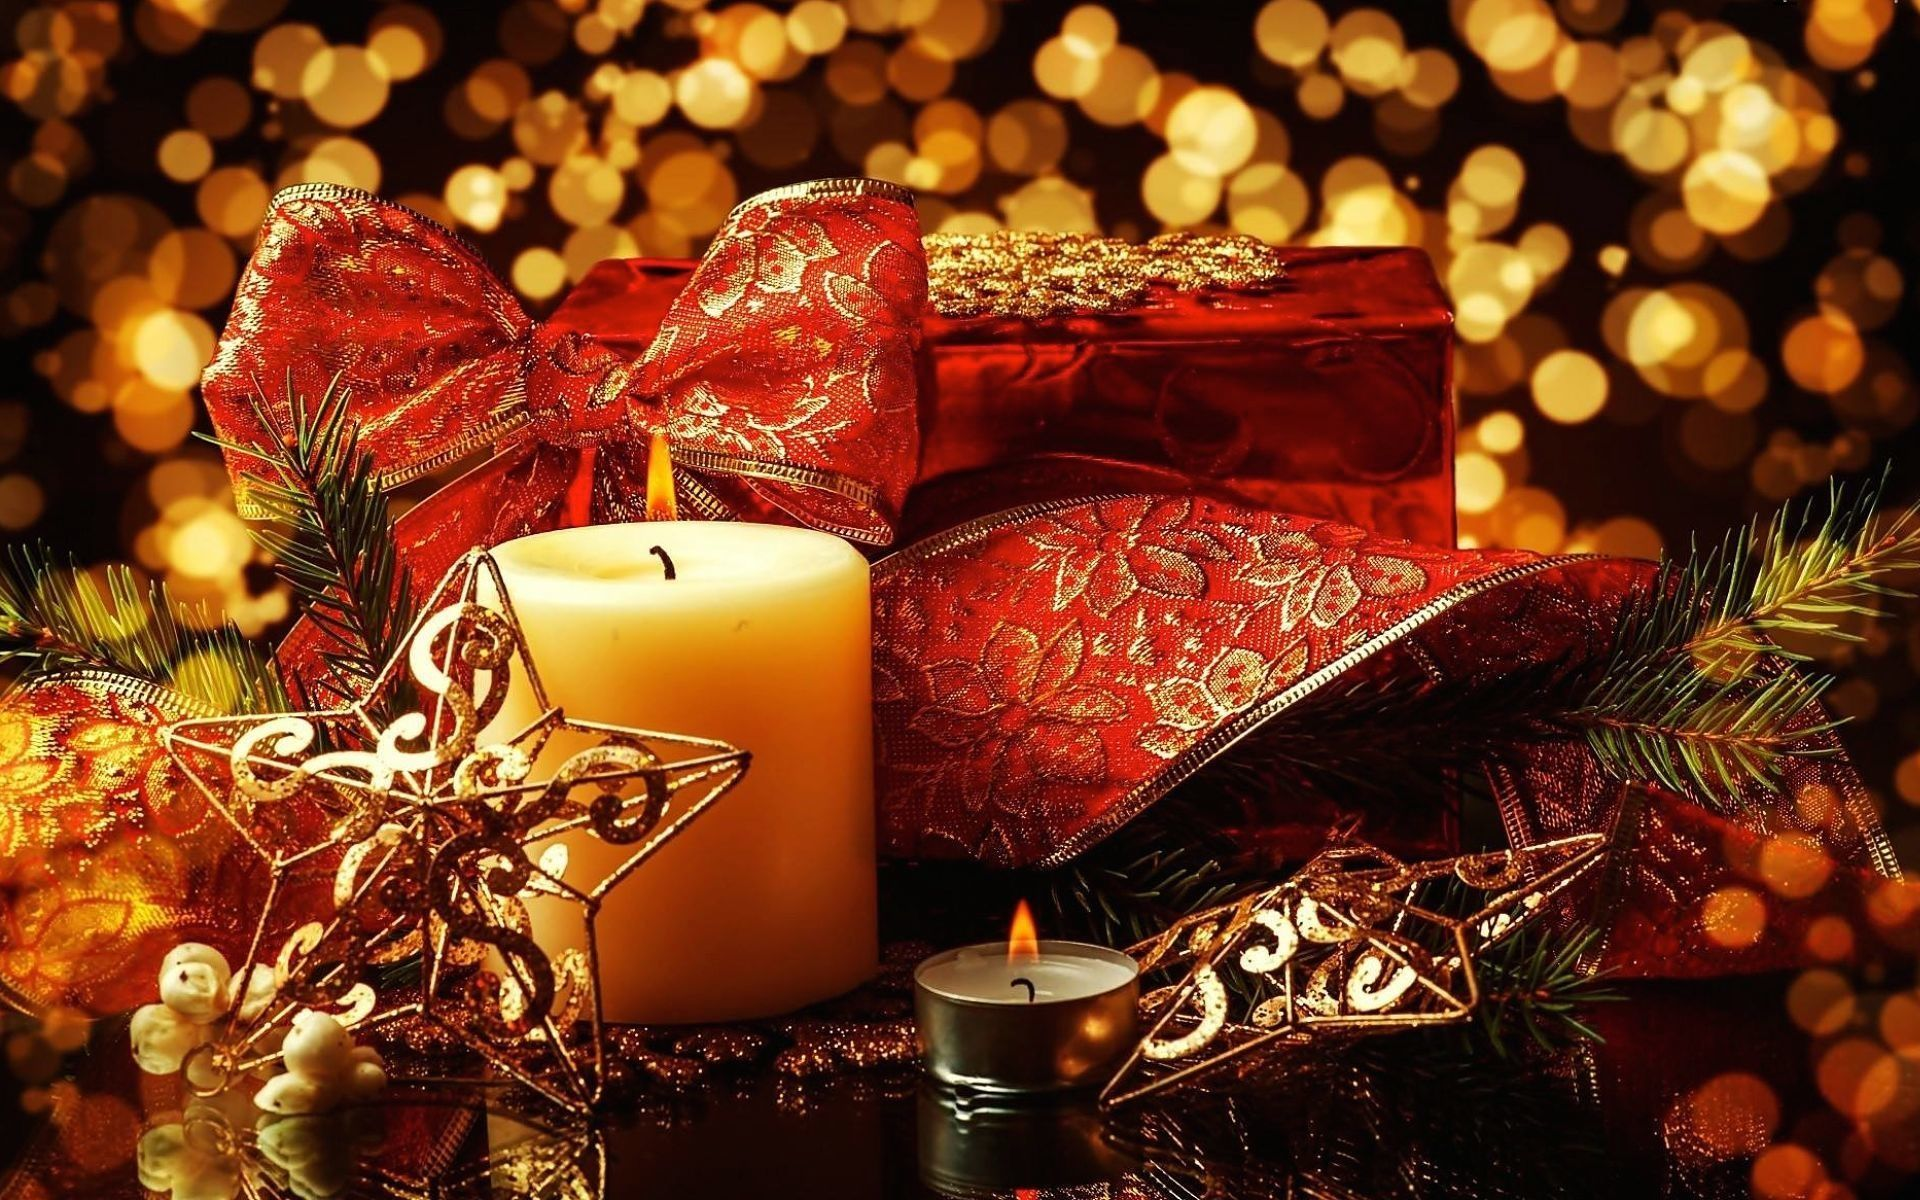 Xmas festive candles tablet wallpaper christmas holiday xmas festive candles tablet wallpaper christmas holiday tabletwallpaper voltagebd Image collections